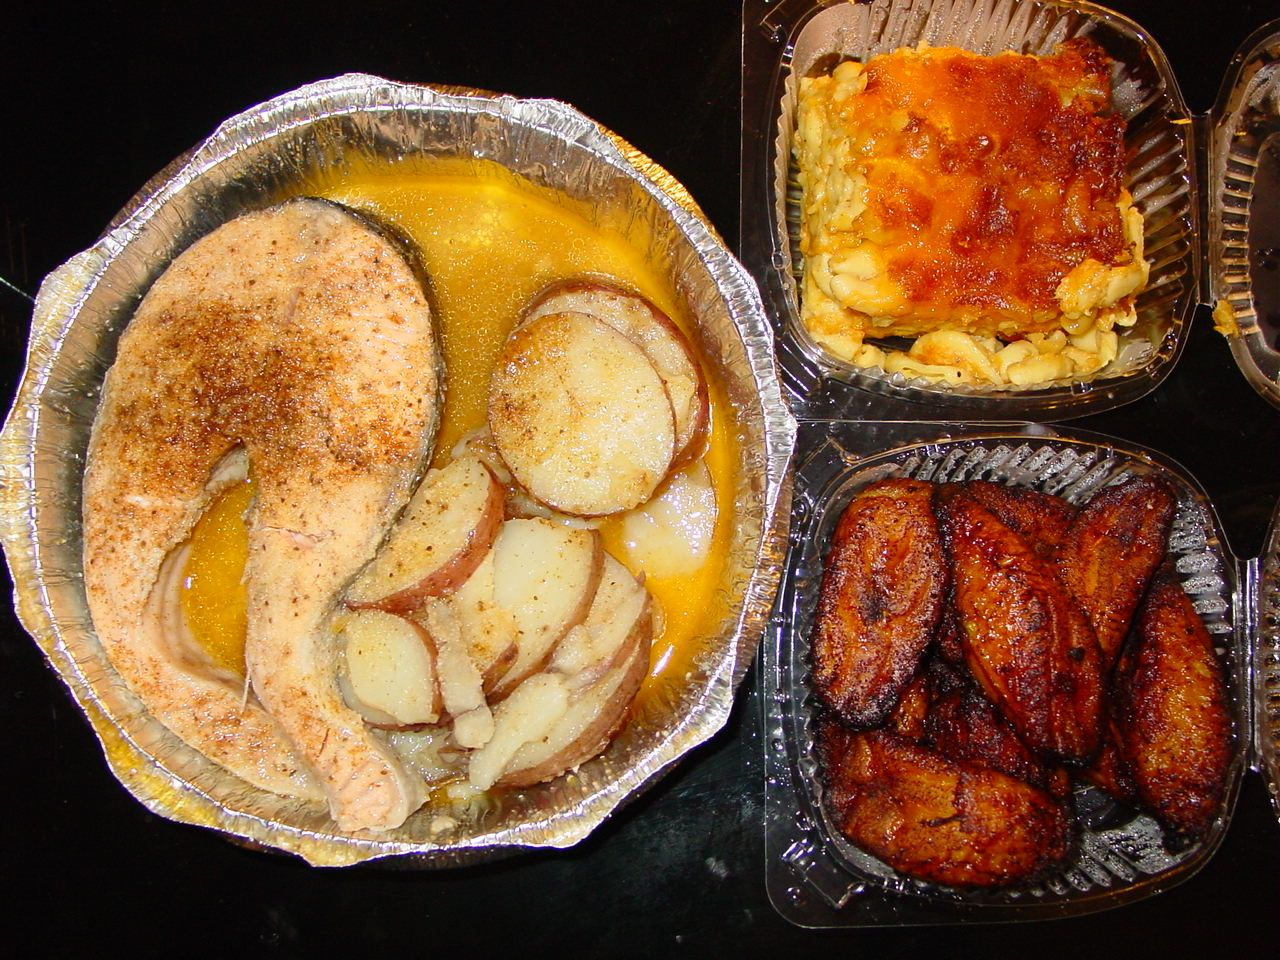 http://www.cheavor.me/wp-content/gallery/steamed-salmon-steak/dsc01367.jpg << Steamed Salmon Steak, Steamed Potatoes, Macaroni & Cheese, and Sweet Plantain.